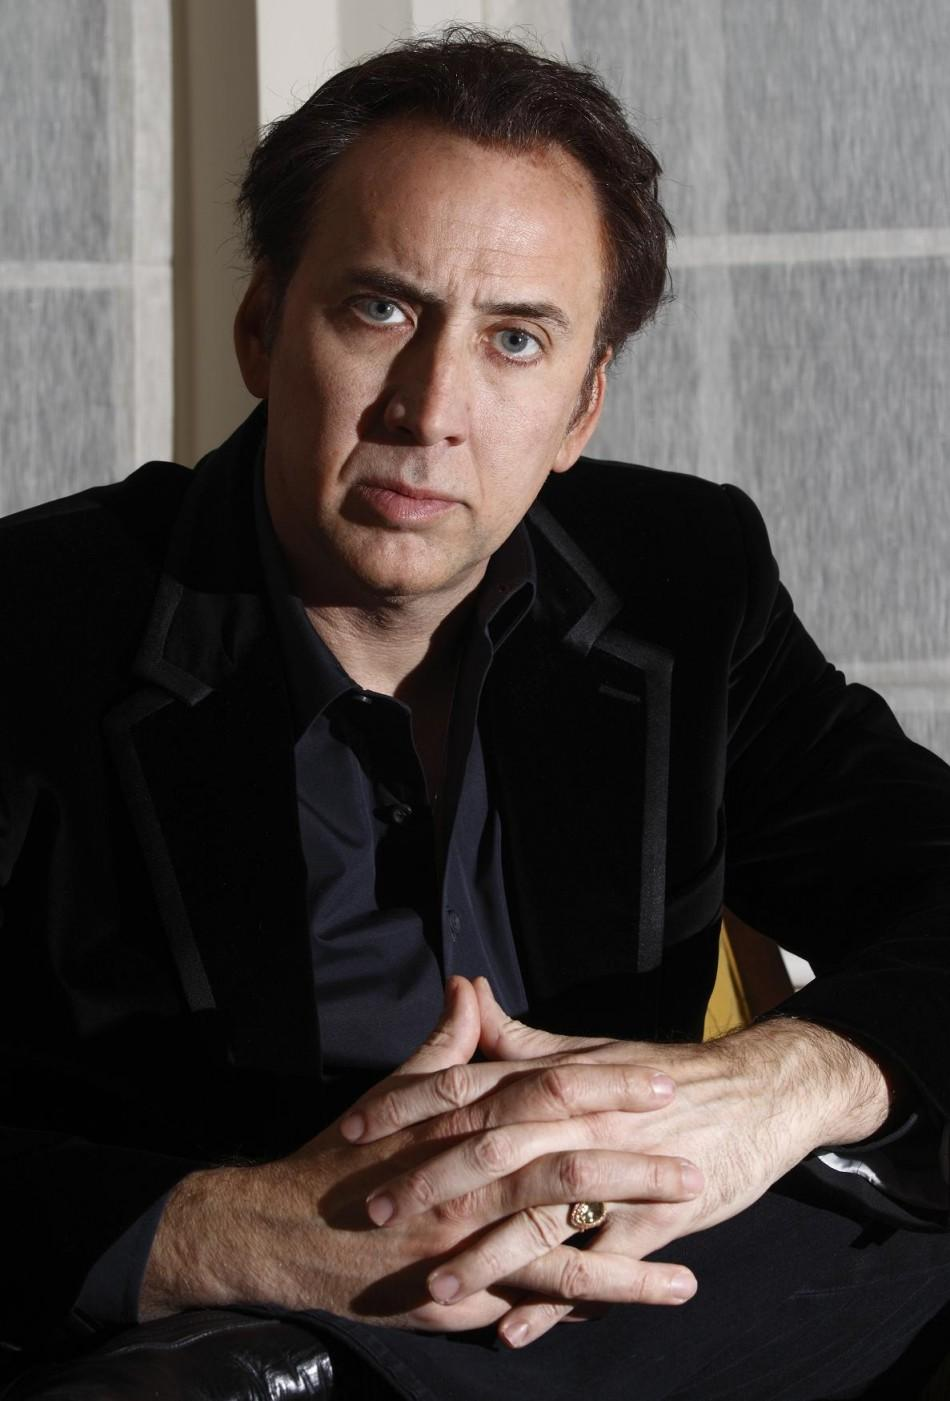 """Nicolas Cage, the 48-year-old actor known for his over-the-top action roles, hasn't been so fortunate when it comes to the box office recently. His latest film """"Ghost Rider: Spirit of Vengeance"""" was expected to dominate ticket sales on its openi"""